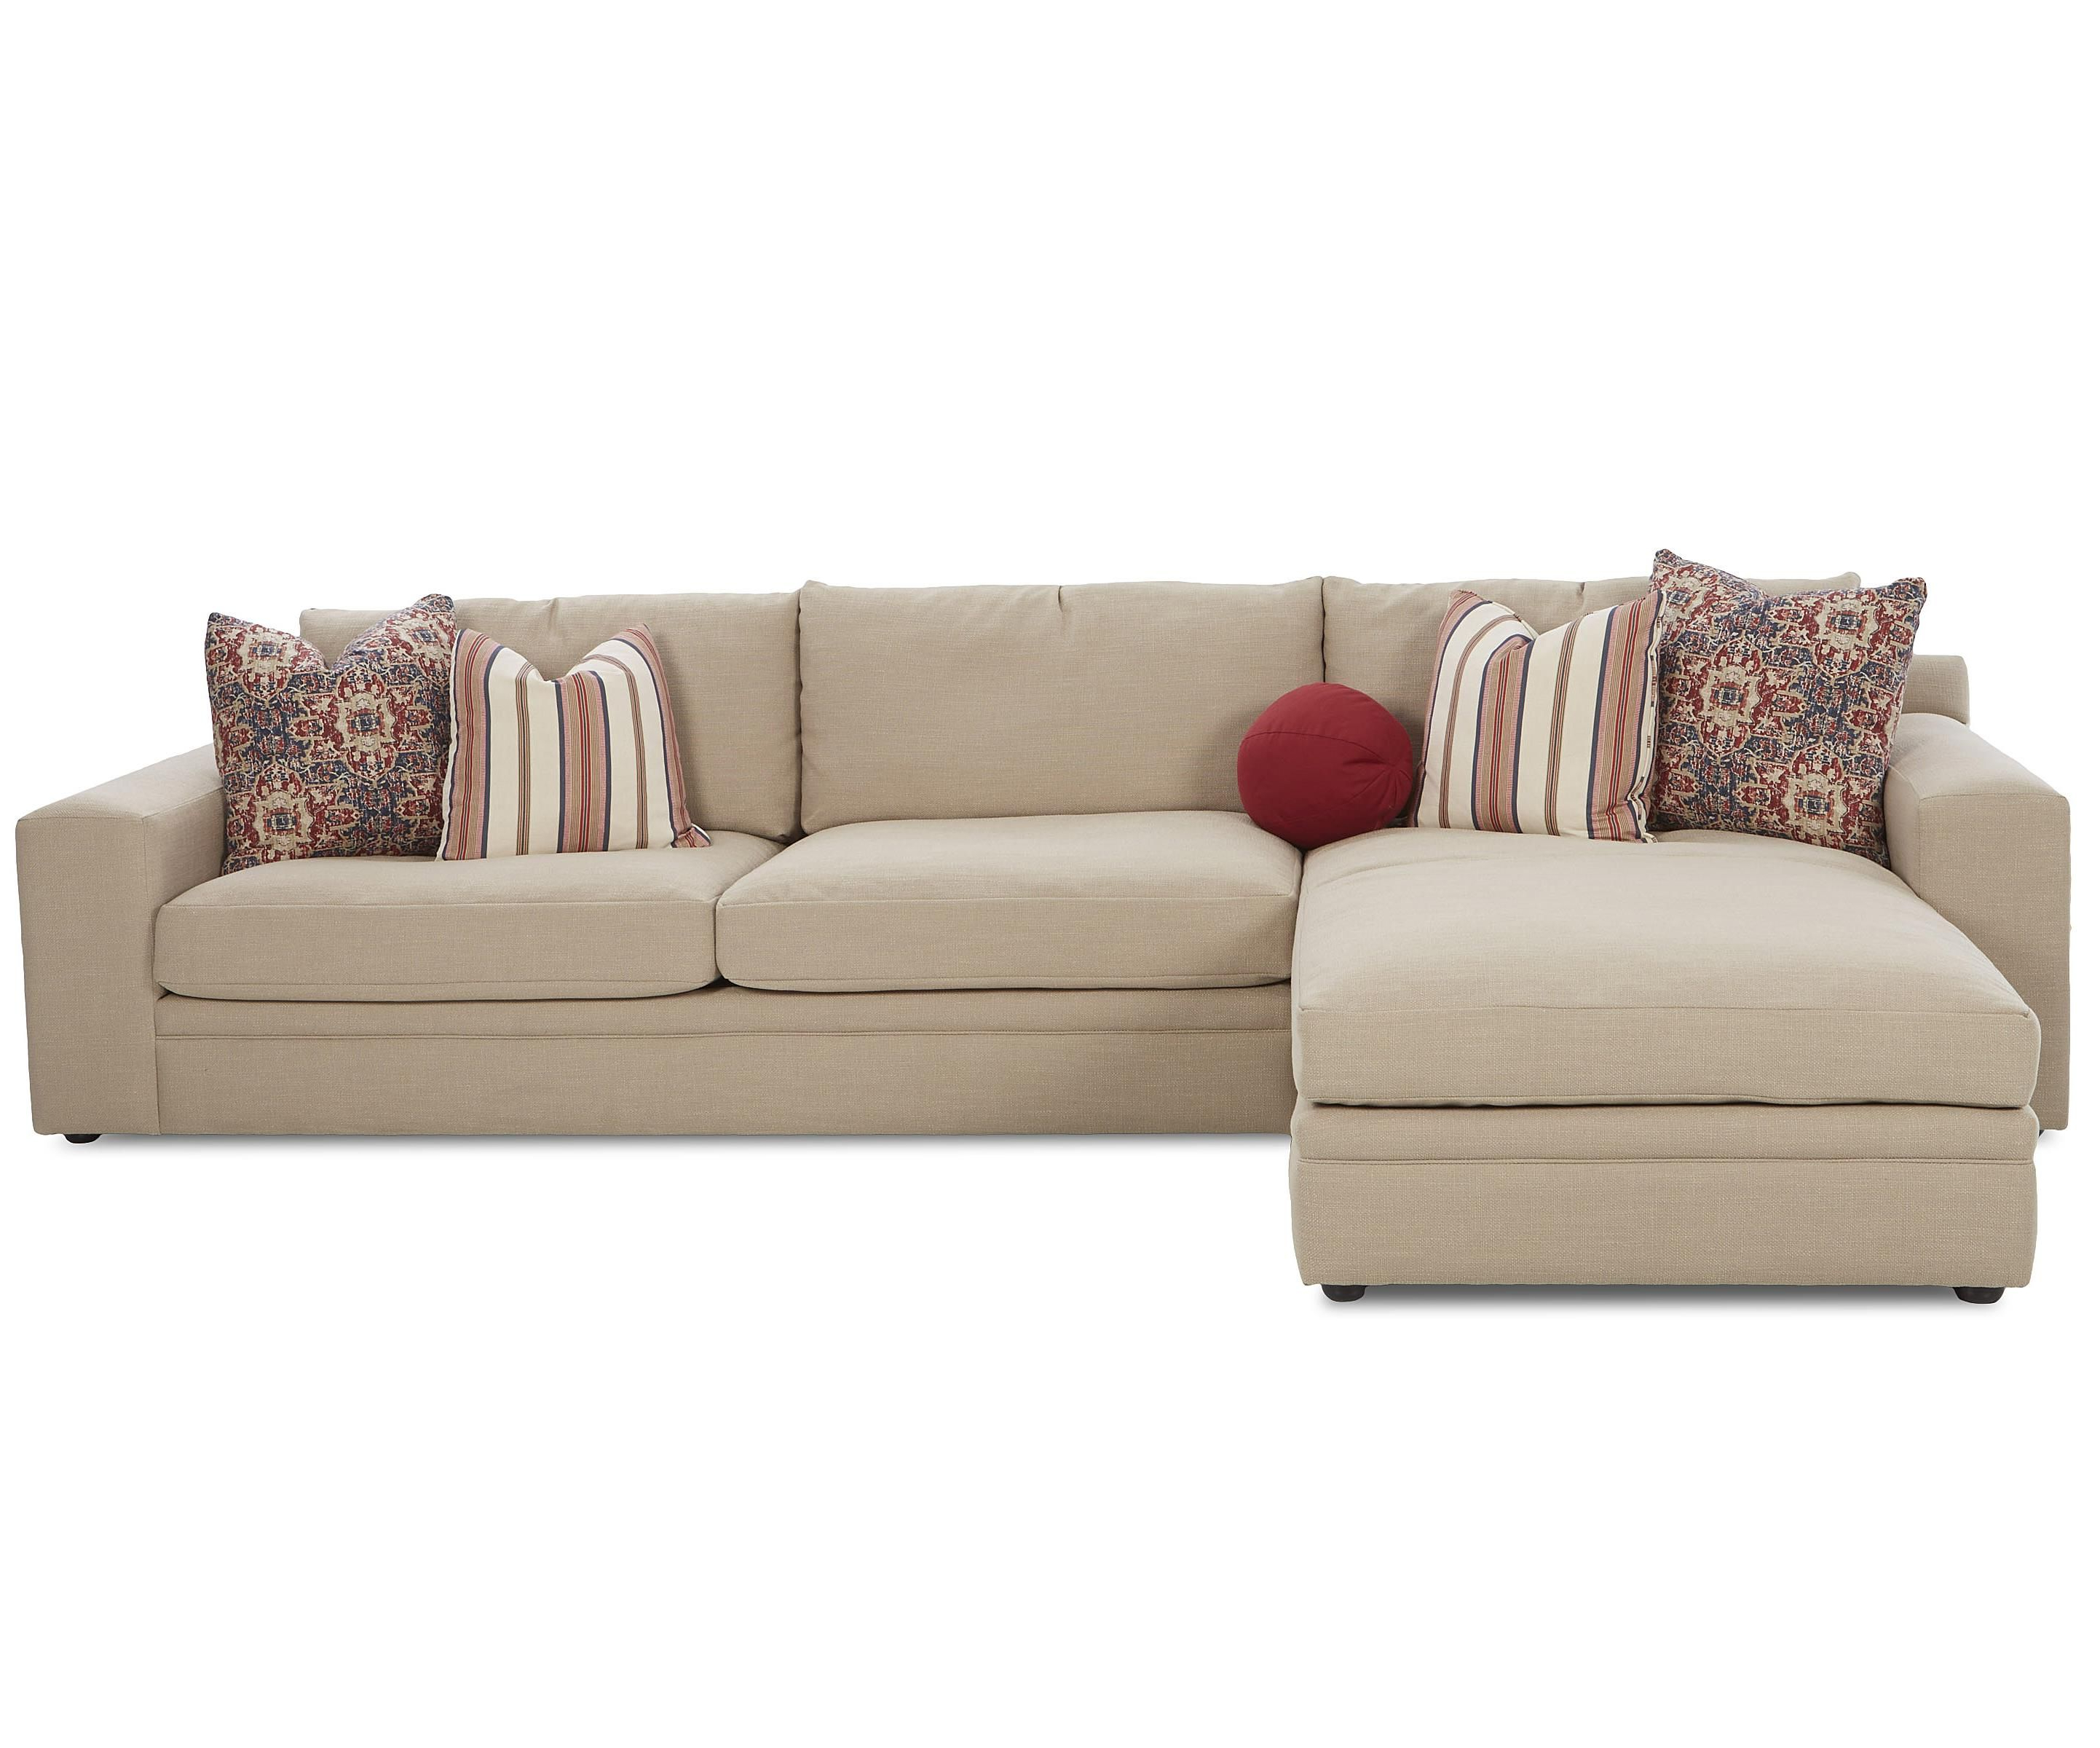 Fashionable Stylish Casual 3 Piece Sectional Sofa With Track Arms And Loose Back For Gordon 3 Piece Sectionals With Raf Chaise (View 11 of 20)